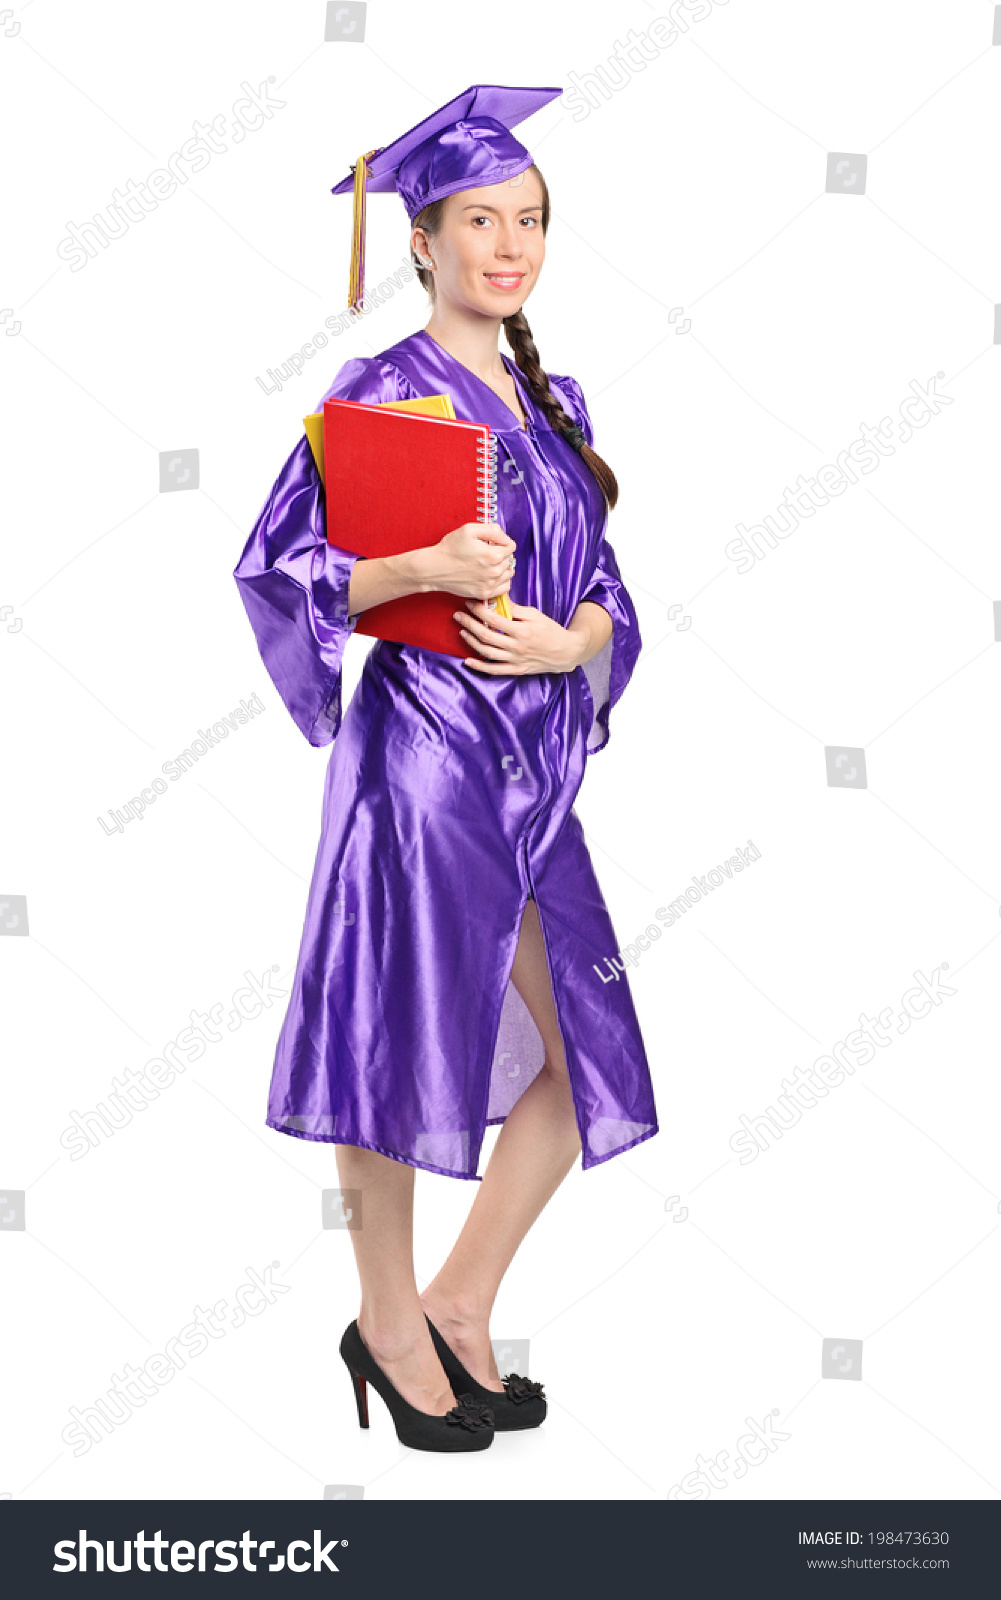 Full Length Portrait Woman Graduation Gown Stock Photo (Royalty Free ...